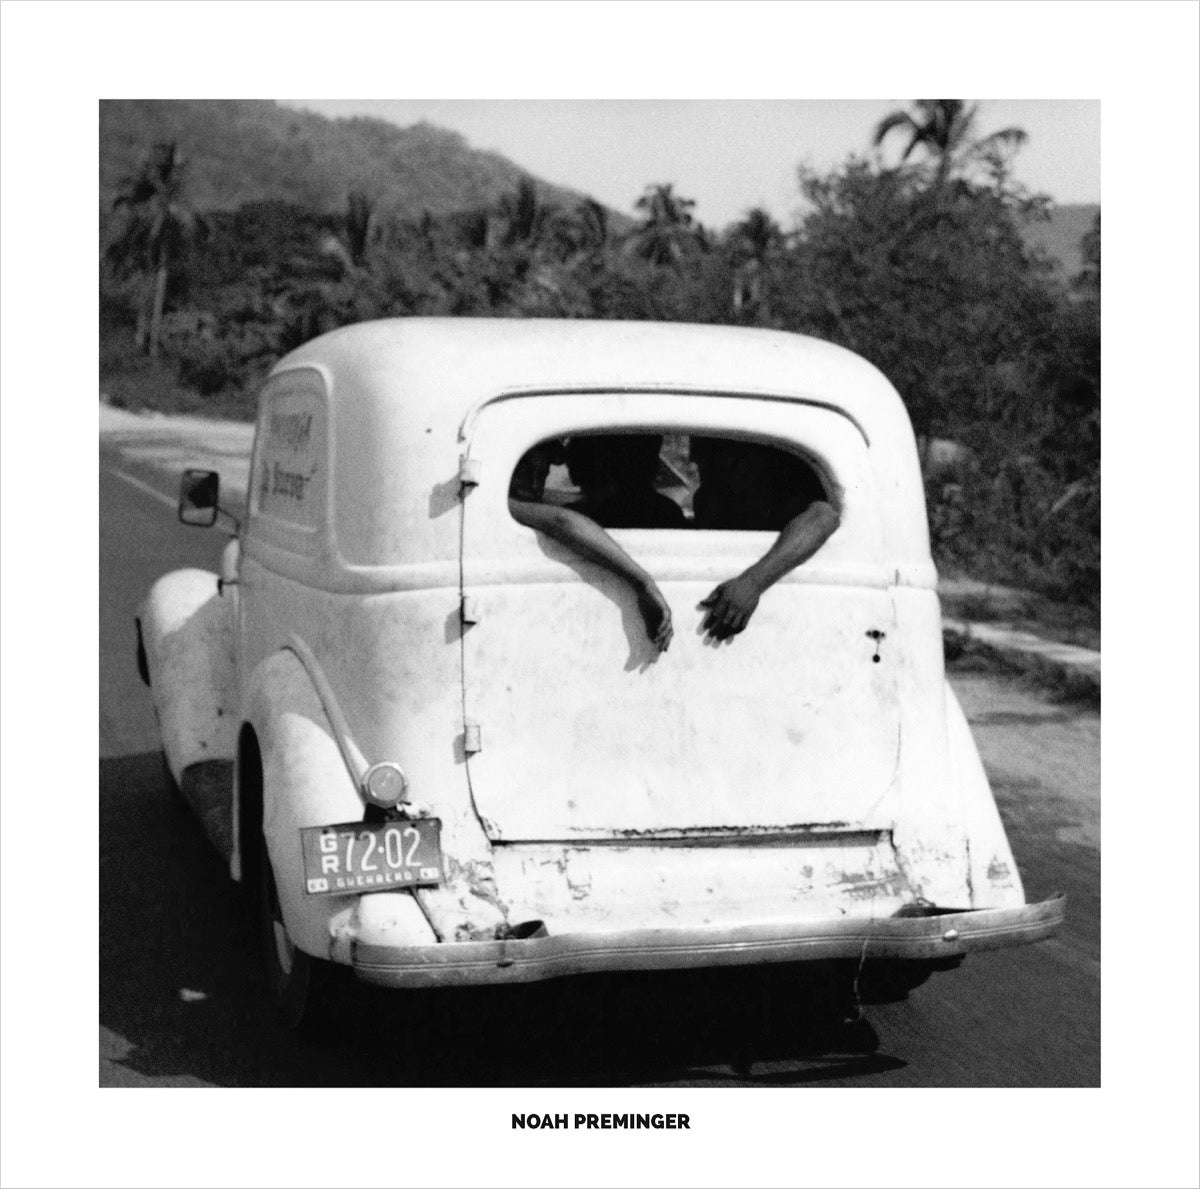 Some Other Time – Album artwork by Bernard Plossu